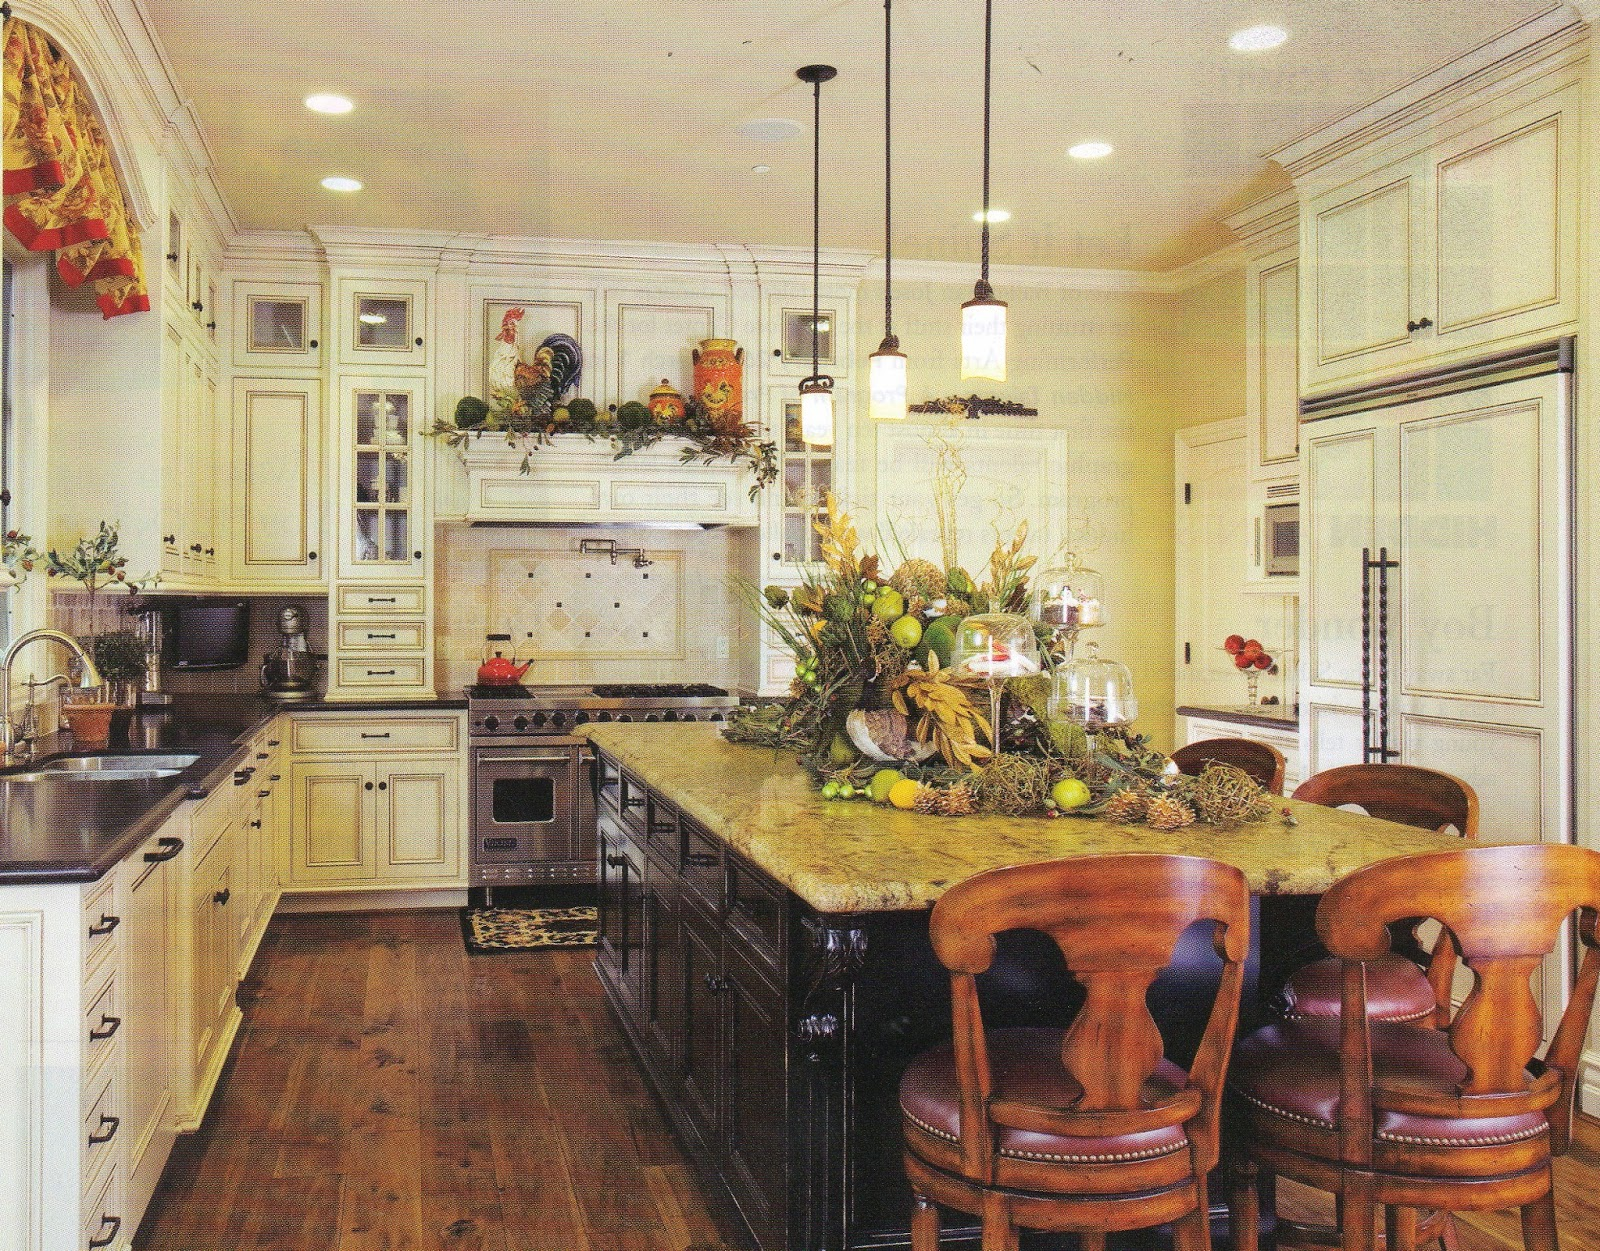 European style kitchen must be accessorized.